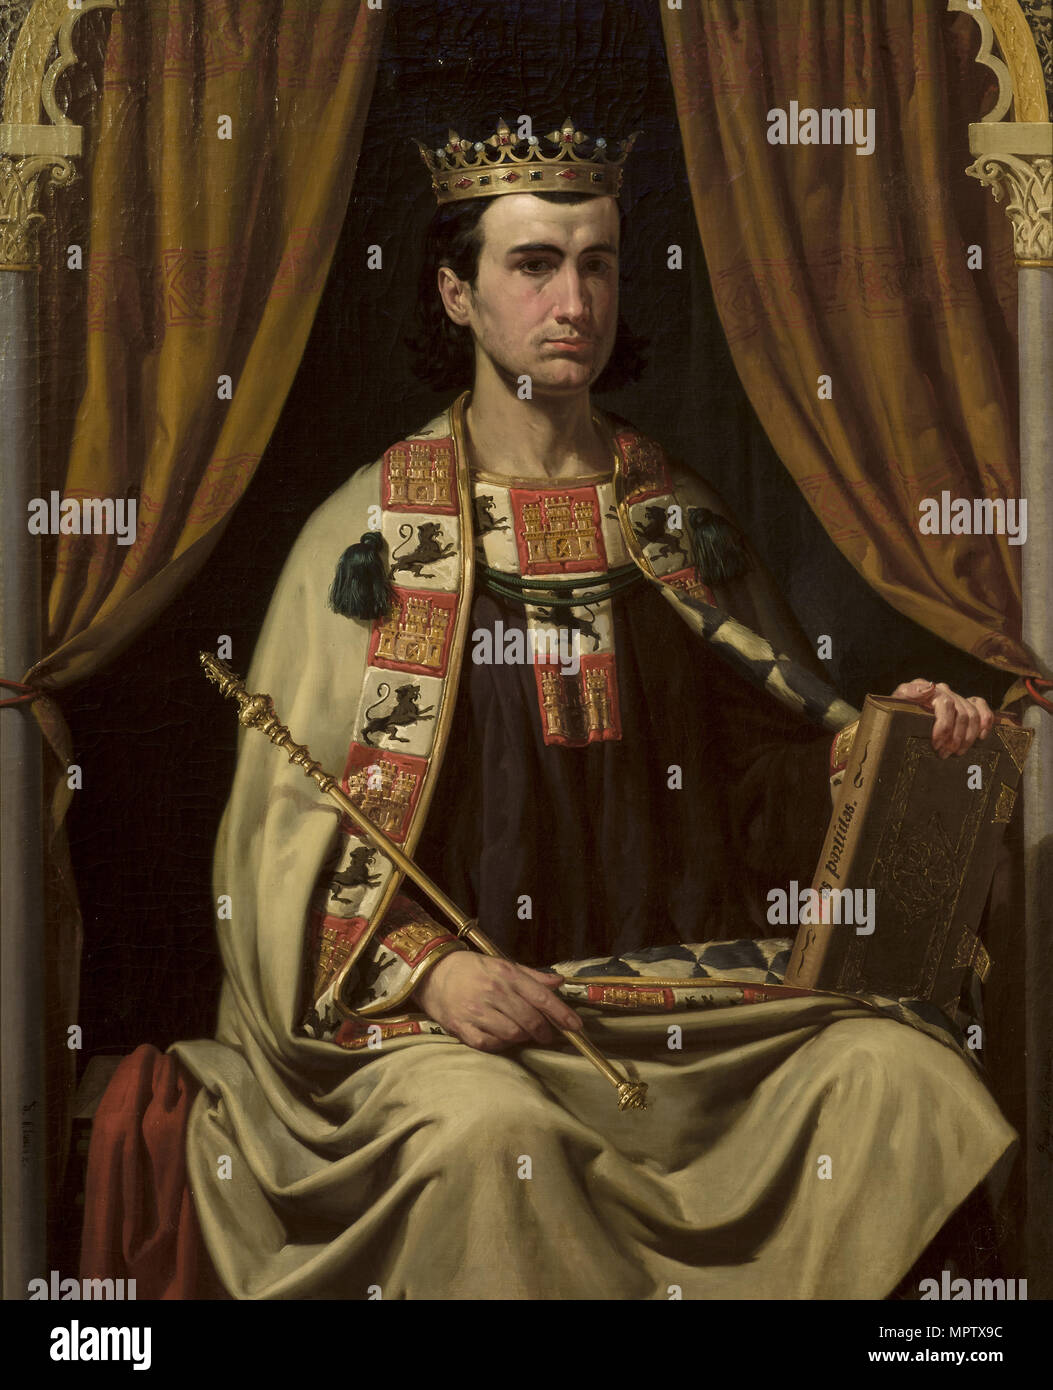 Portrait of Alfonso X (1221-1284), King of Castile, León and Galicia. - Stock Image